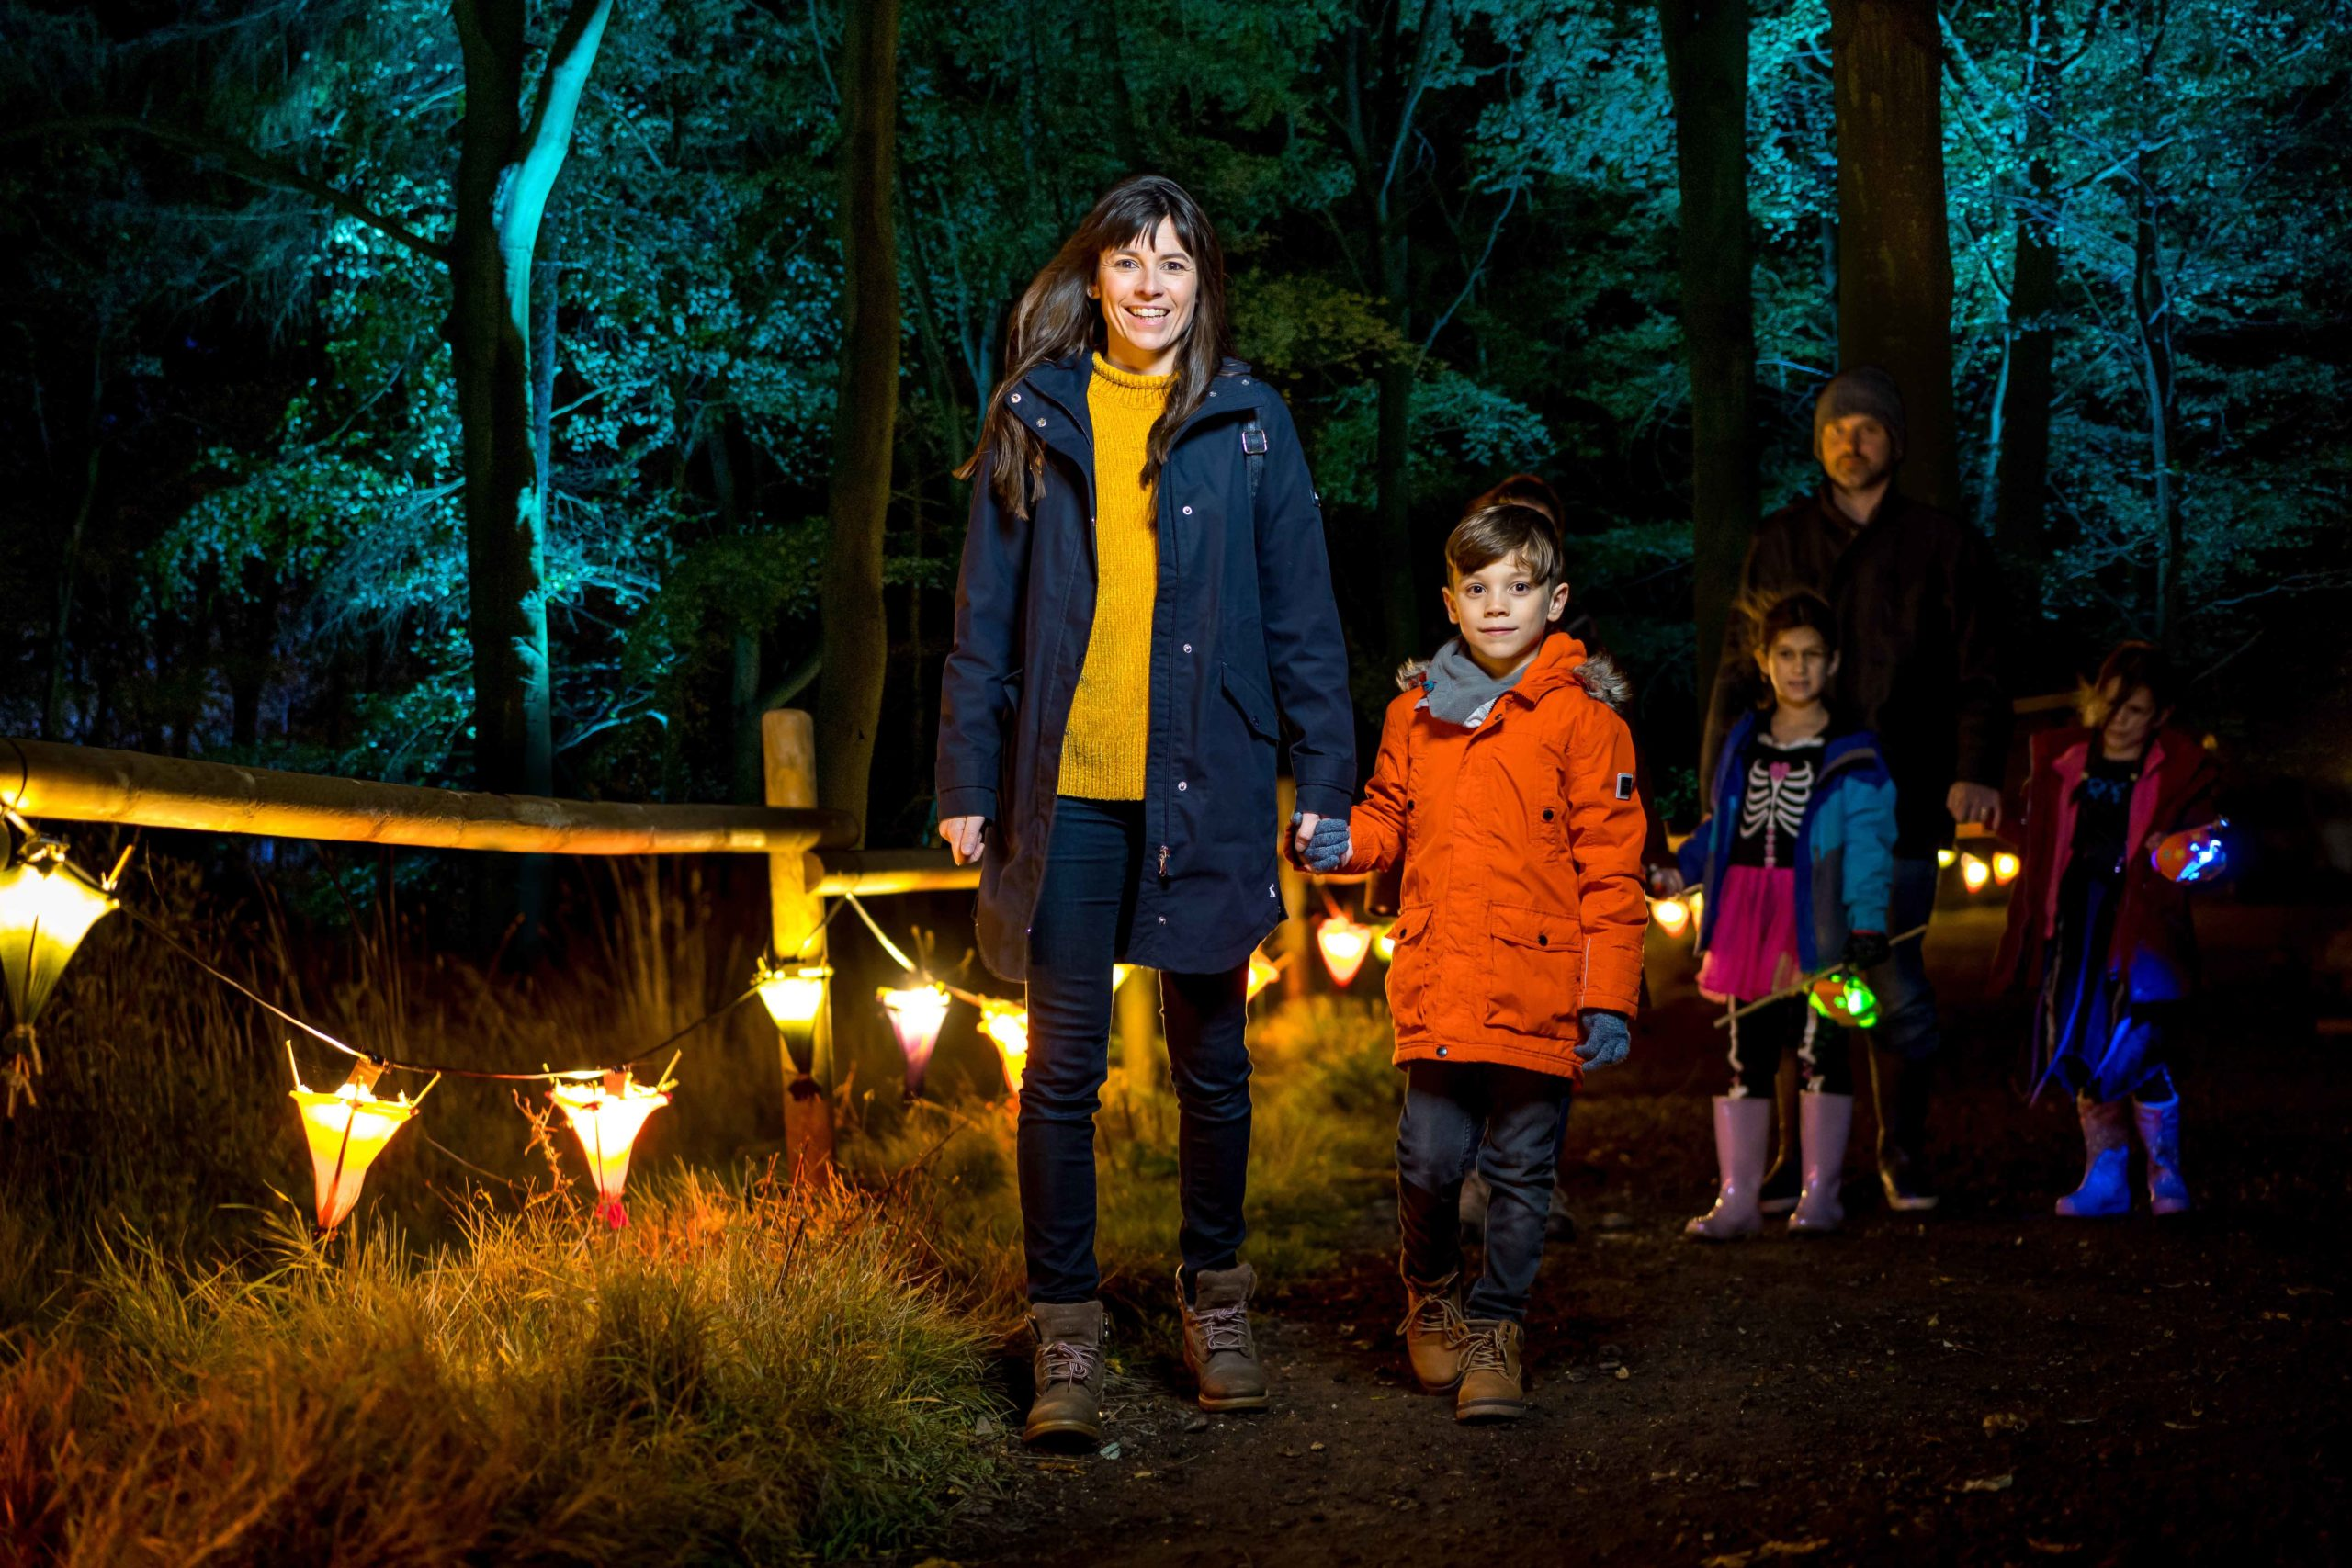 The Glorious Glowing Lantern Parade is coming to BeWILDerwood Cheshire!